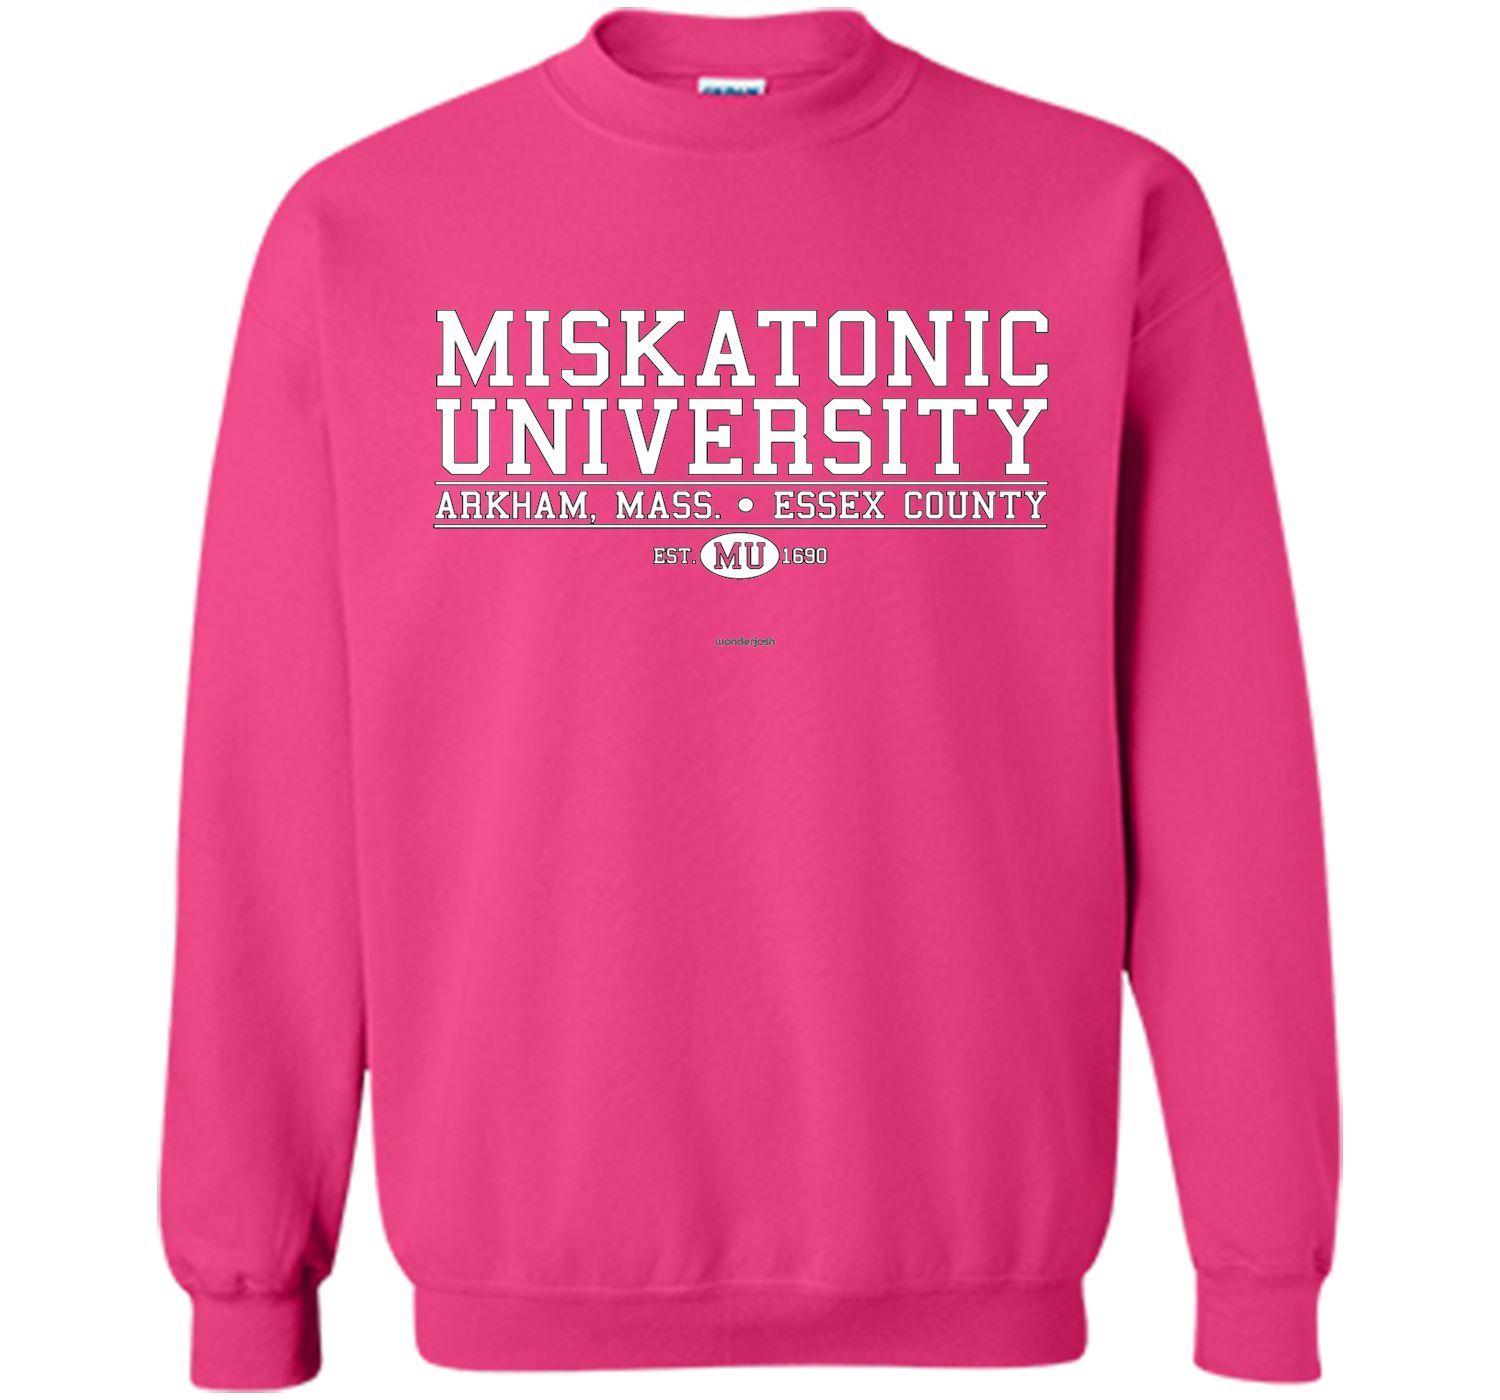 Miskatonic University - White tshirt